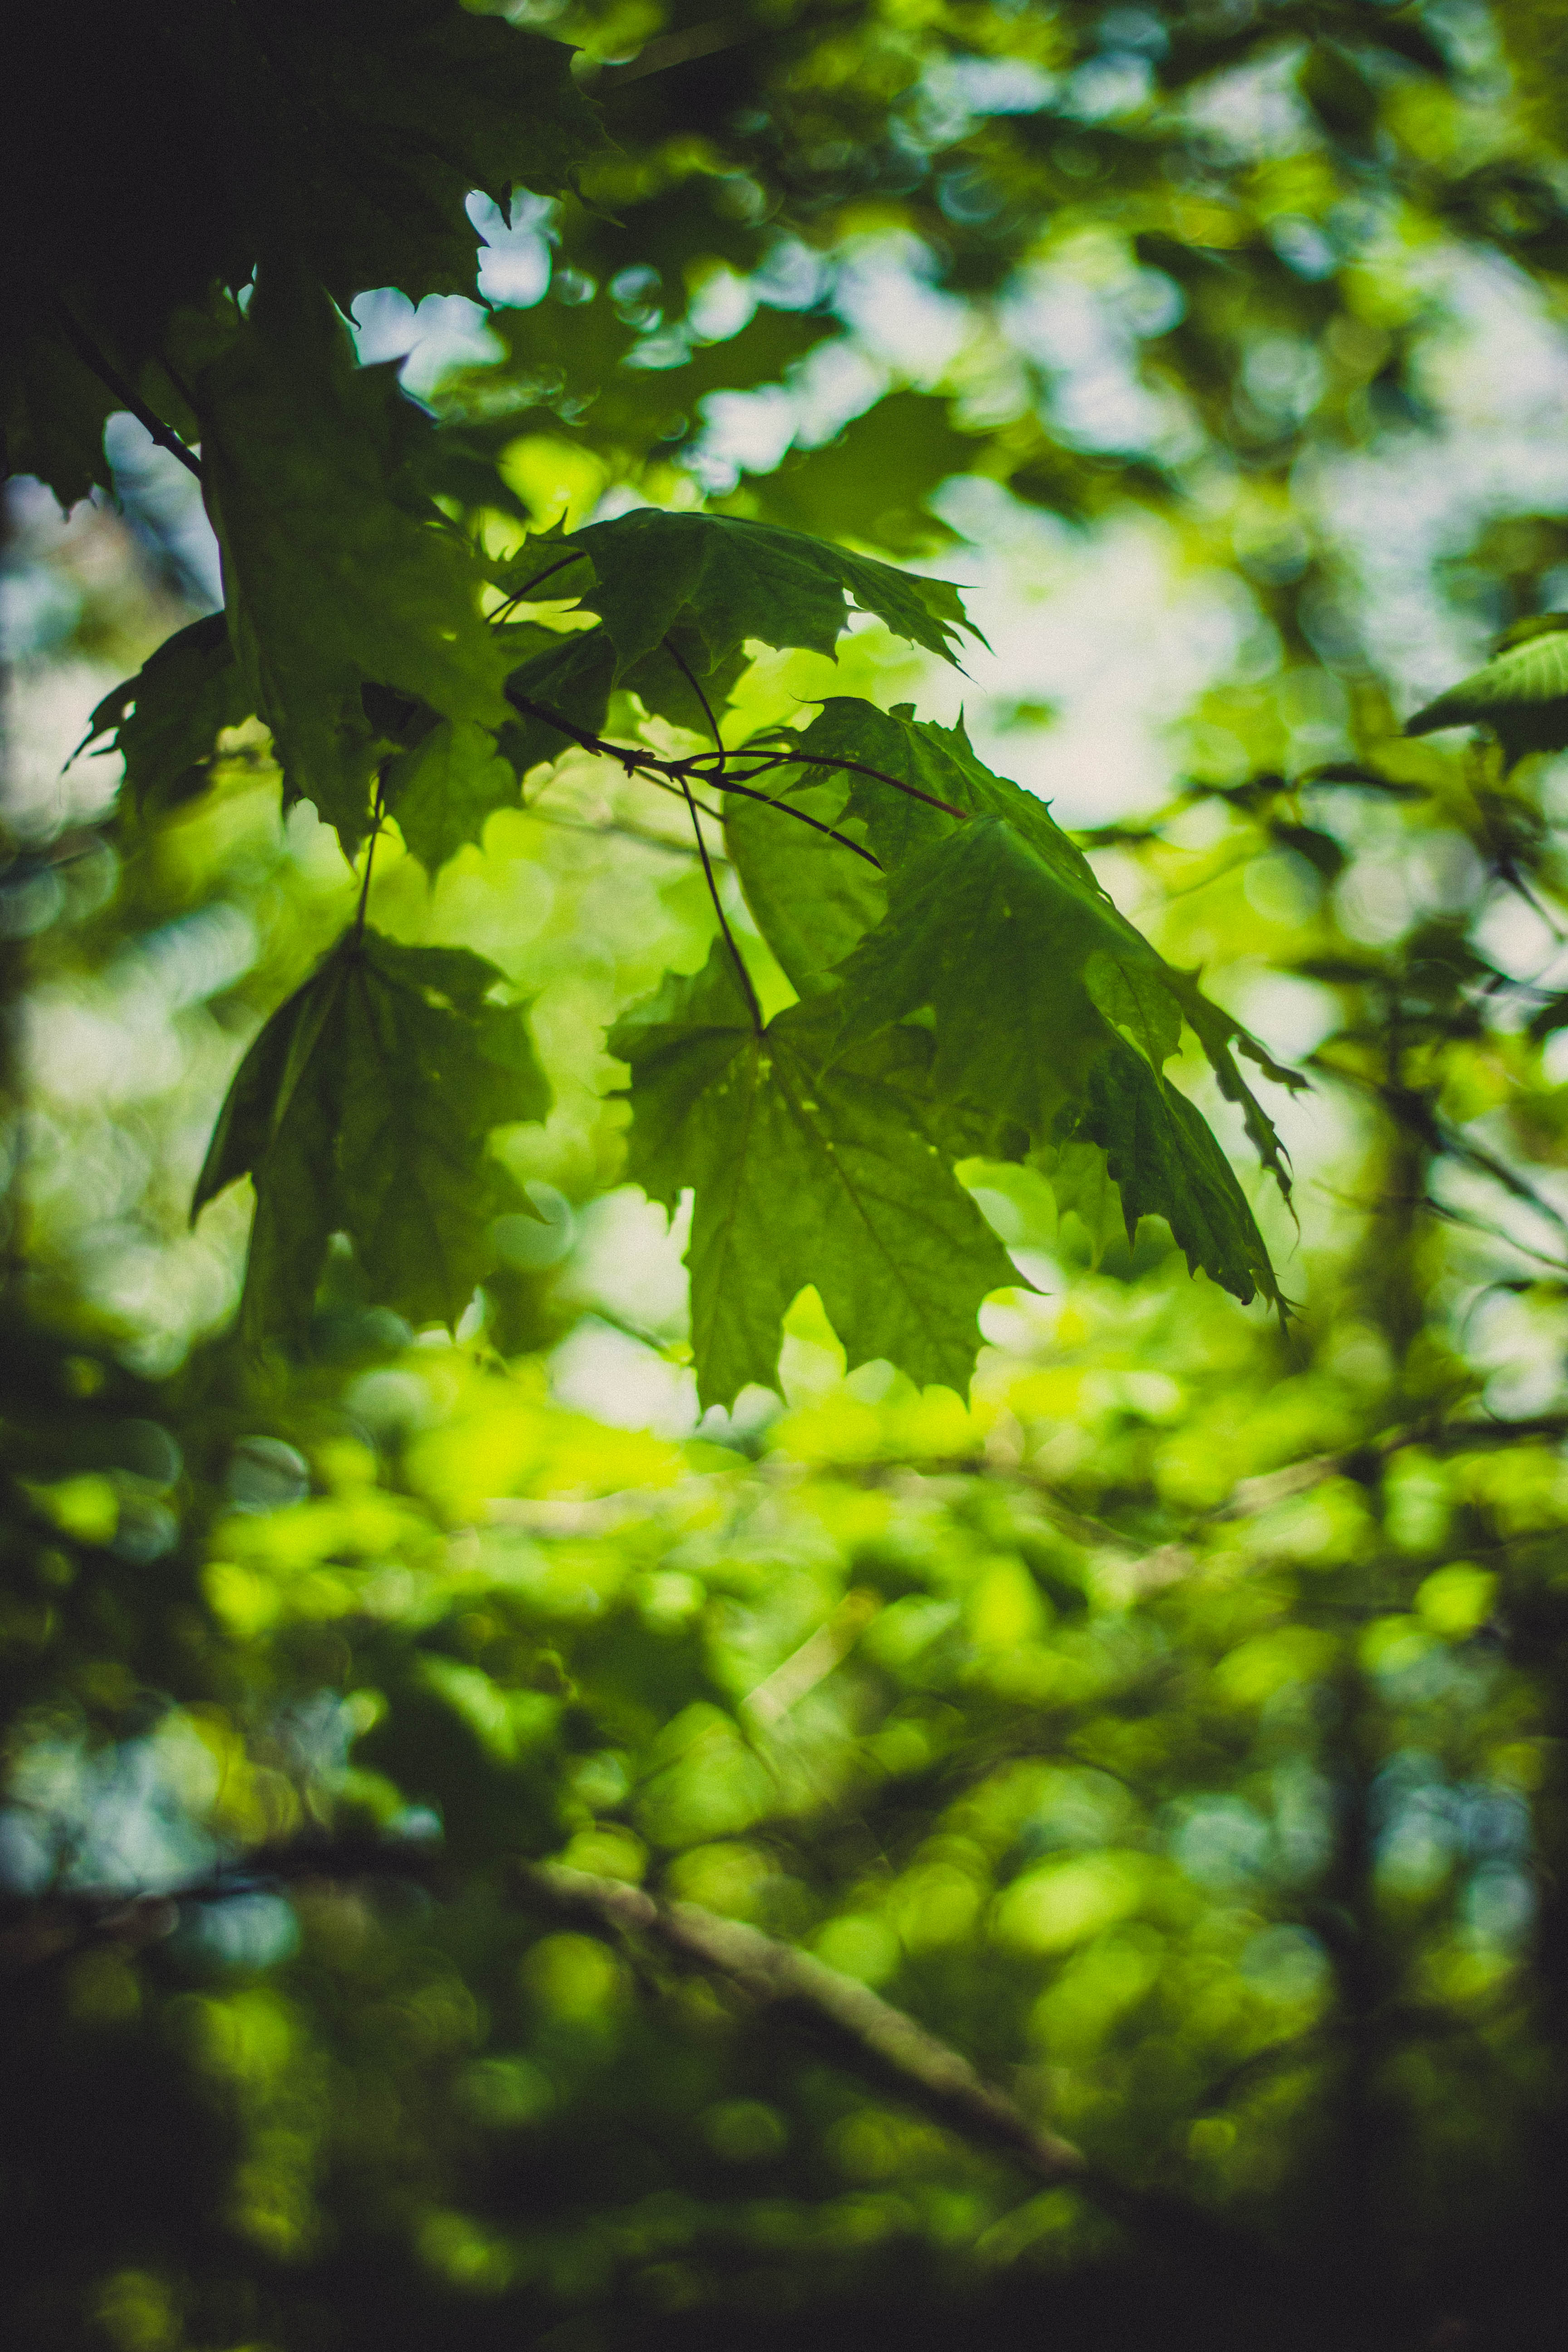 Green And Orange Leaves Focus Photography 183 Free Stock Photo